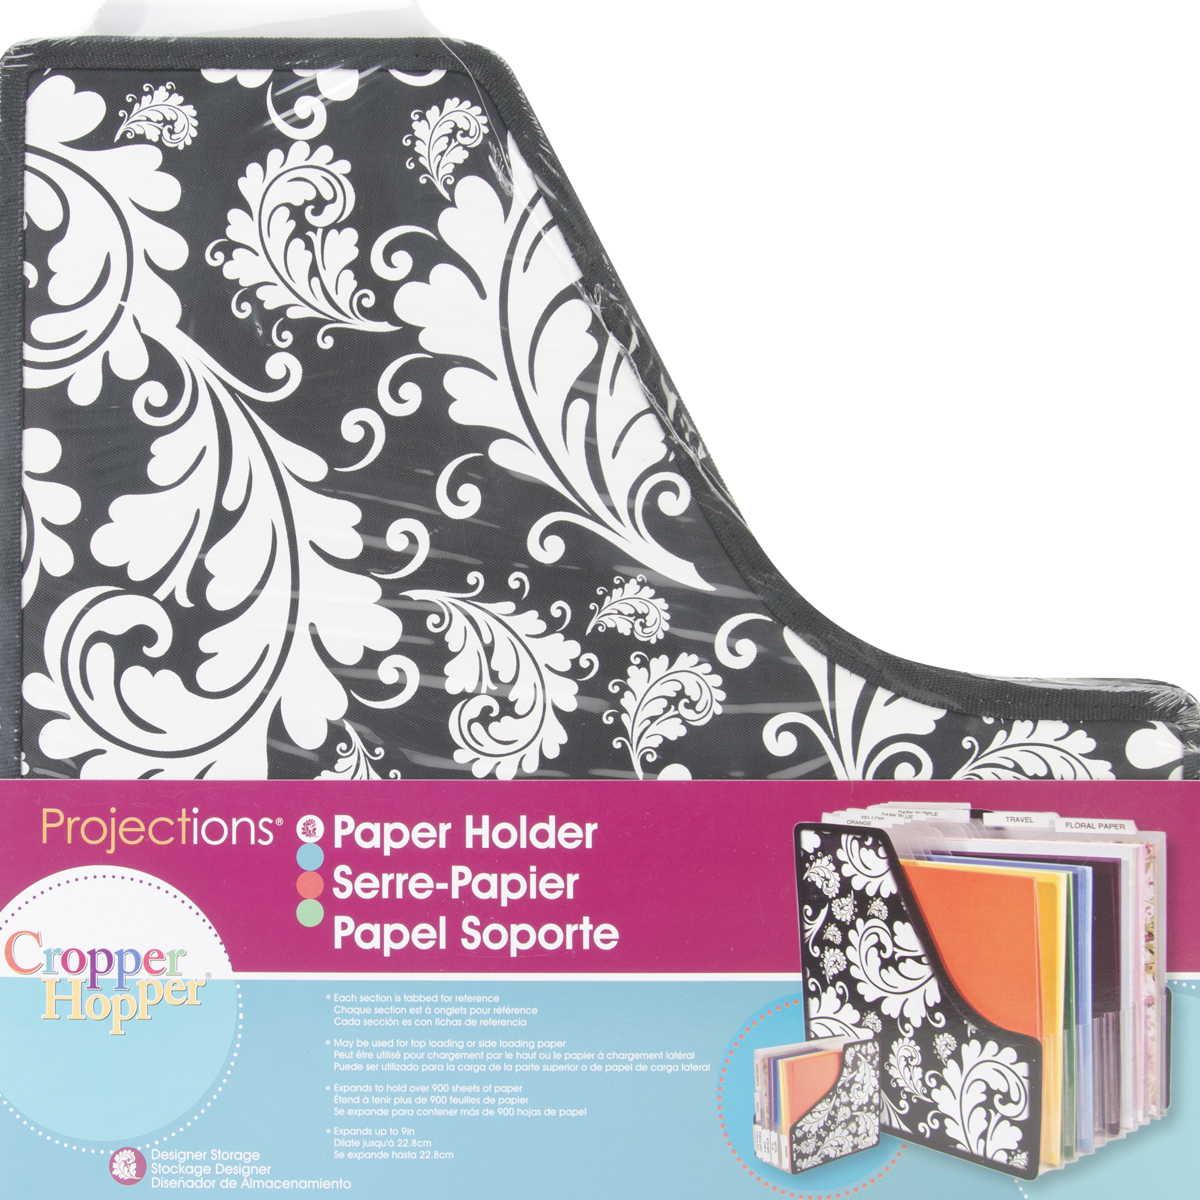 Storage Studios Projections Expandable Paper Holder-13.5X14.25X1, Expands To ...